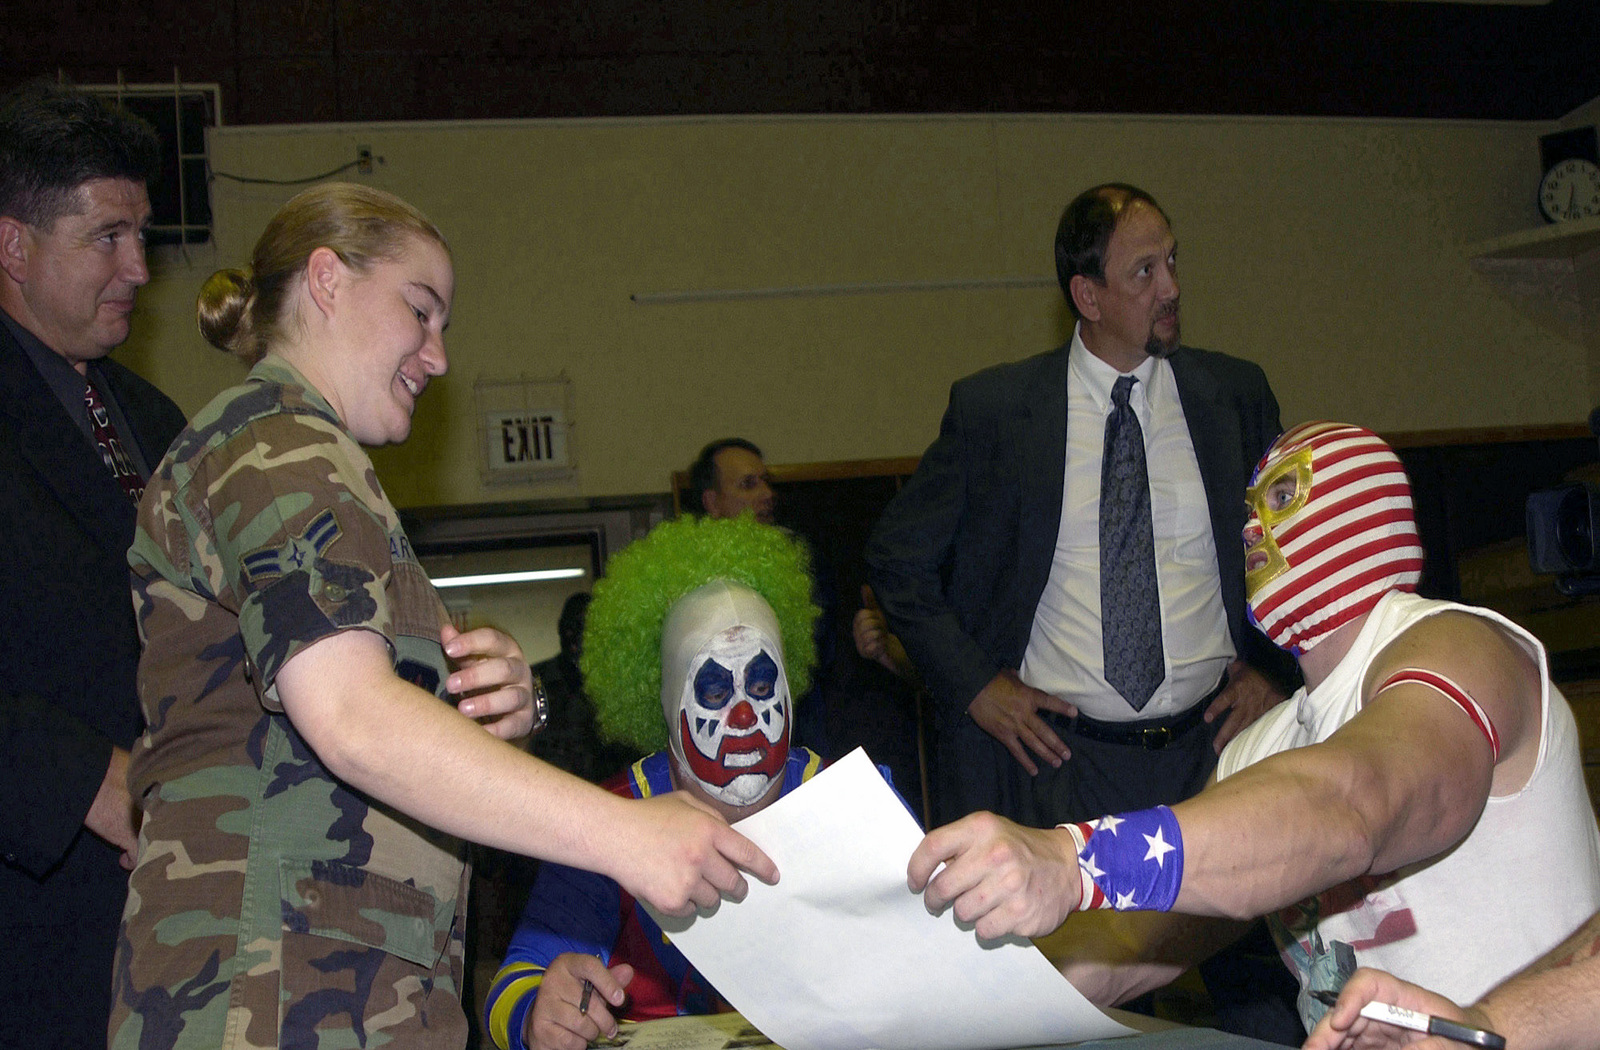 """US Air Force (USAF) AIRMAN First Class (A1C) Danielle Hawthorn (foreground left), 39th Security Forces Squadron (SFS), receives a signed autograph from Professional Wrestlers from the World Wrestling Alliance (WWA), Doink """"The Clown"""" (center) and The Patriot (right), prior to an Armed Forces Entertainment (AFE) sponsored event held at Incirlik Air Base (AB), Turkey"""